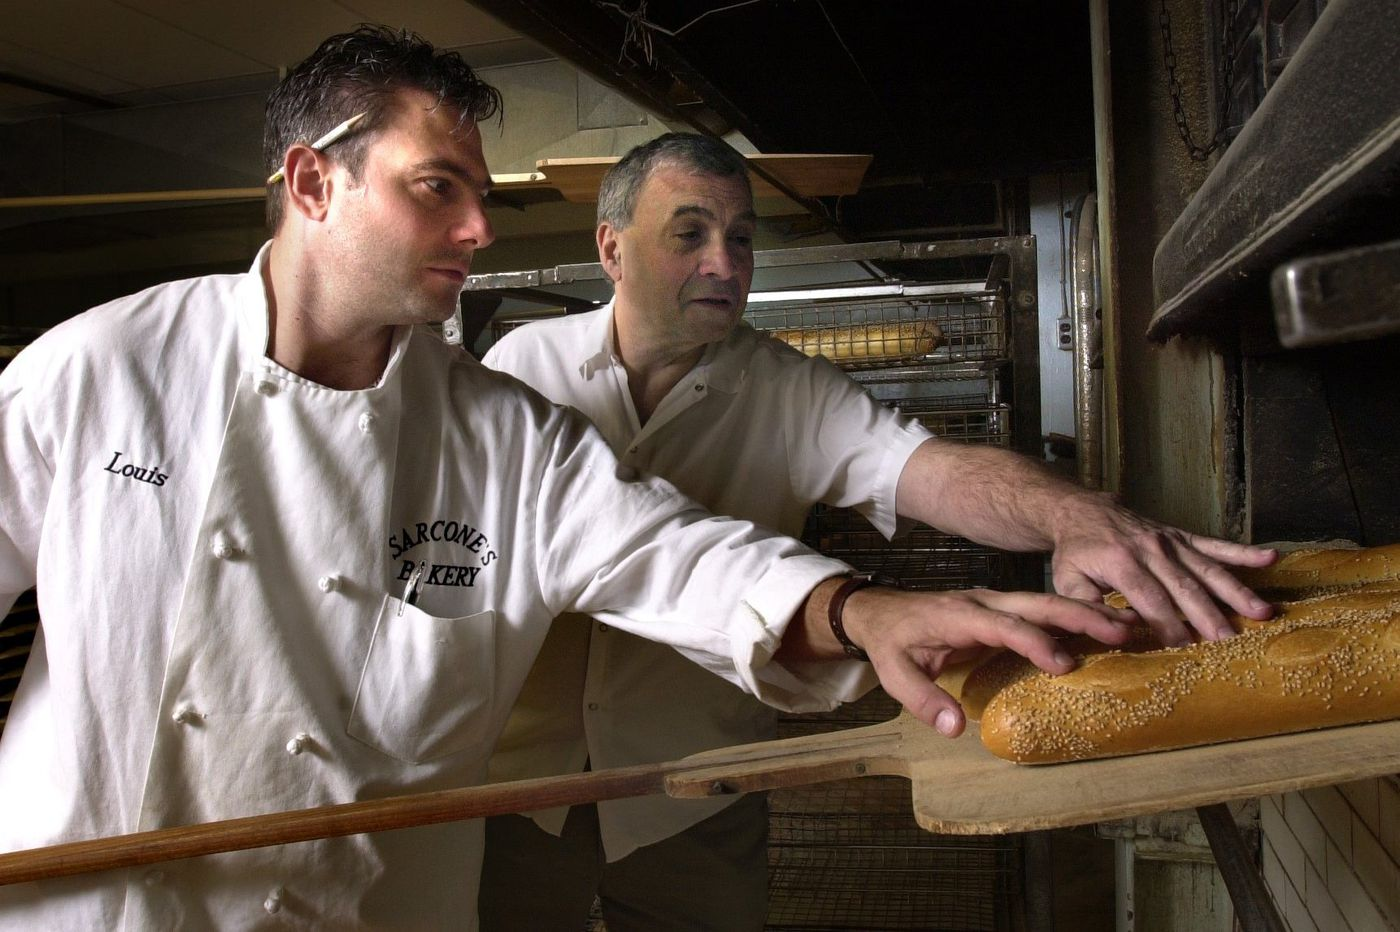 The flavor also rises: Baking bread takes time at Sarcone's